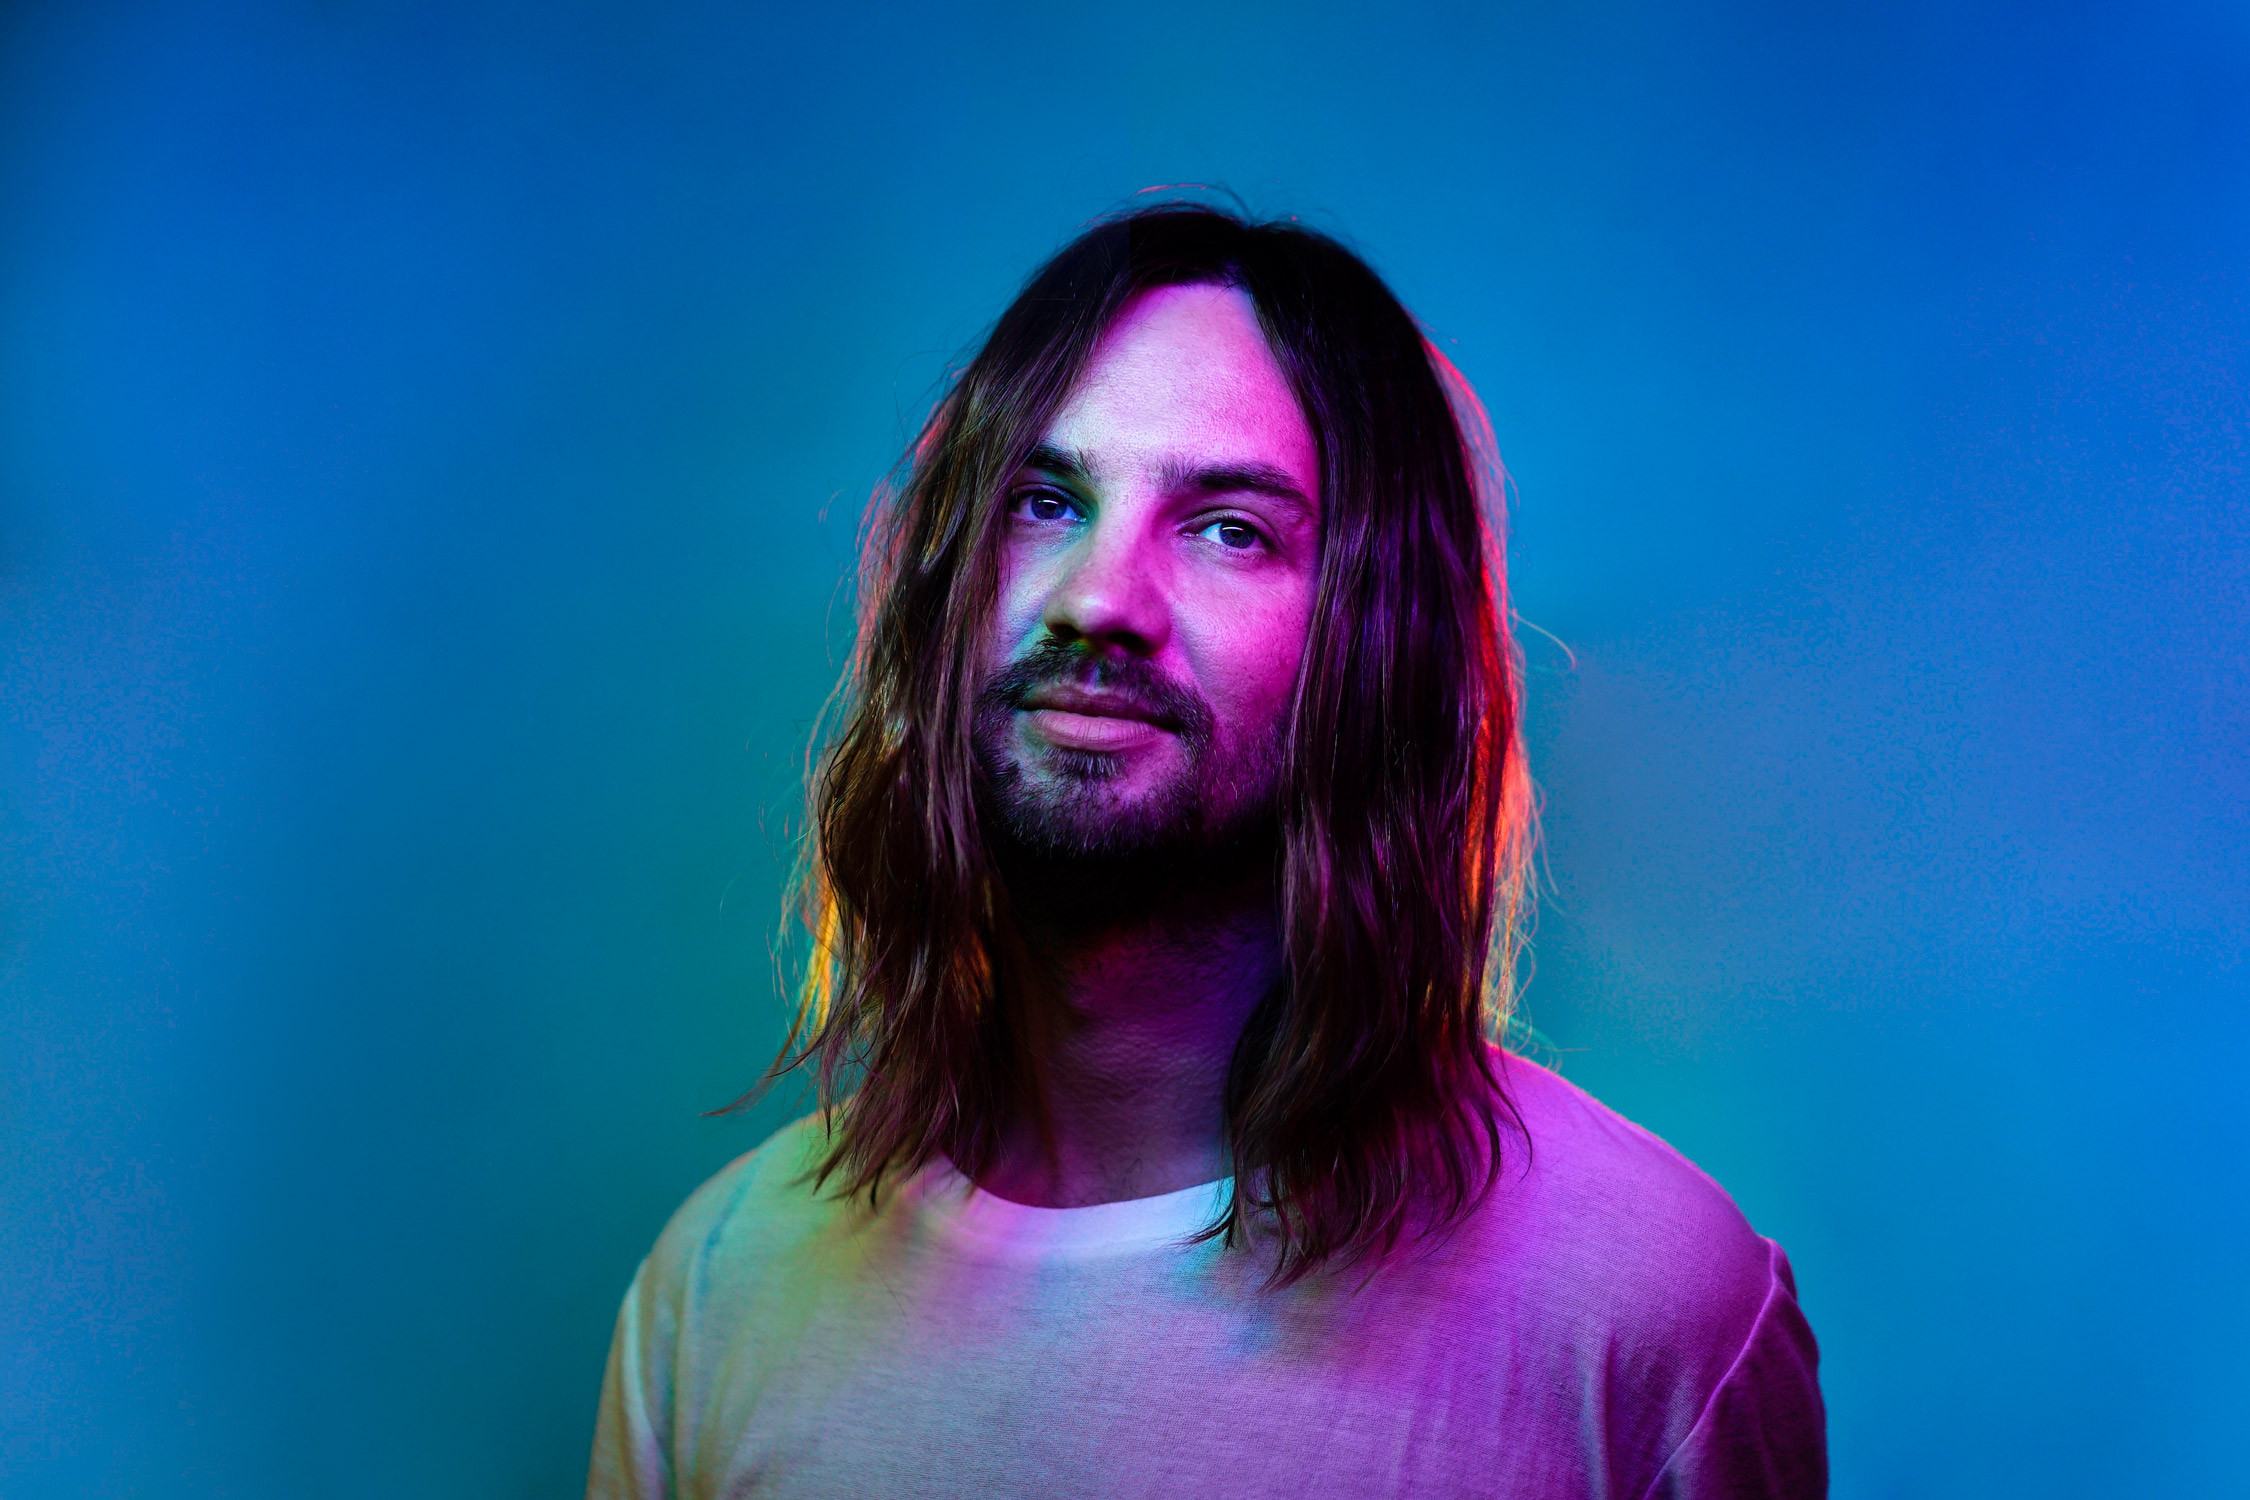 TLMT Podcast Returns With Reviews Of Tame Impala, Torres, Glass Animals, Billie Eilish & more